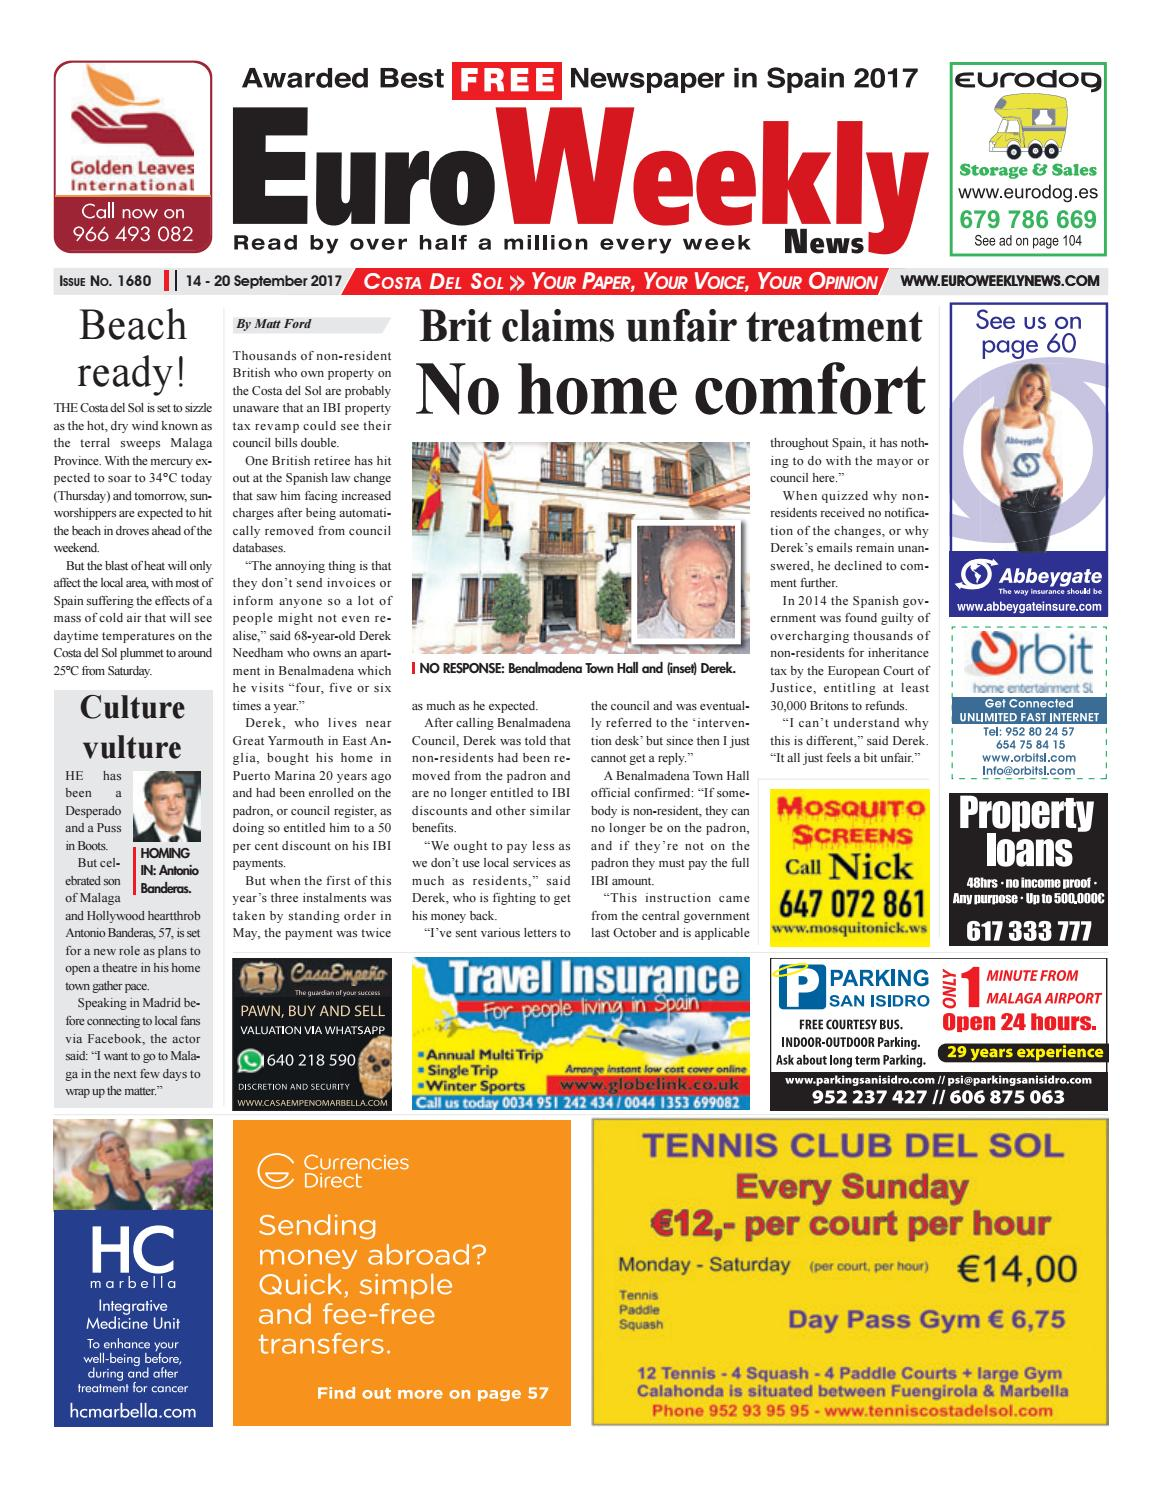 Euro weekly news costa del sol 14 20 september 2017 issue 1680 by euro weekly news costa del sol 14 20 september 2017 issue 1680 by euro weekly news media sa issuu kristyandbryce Gallery